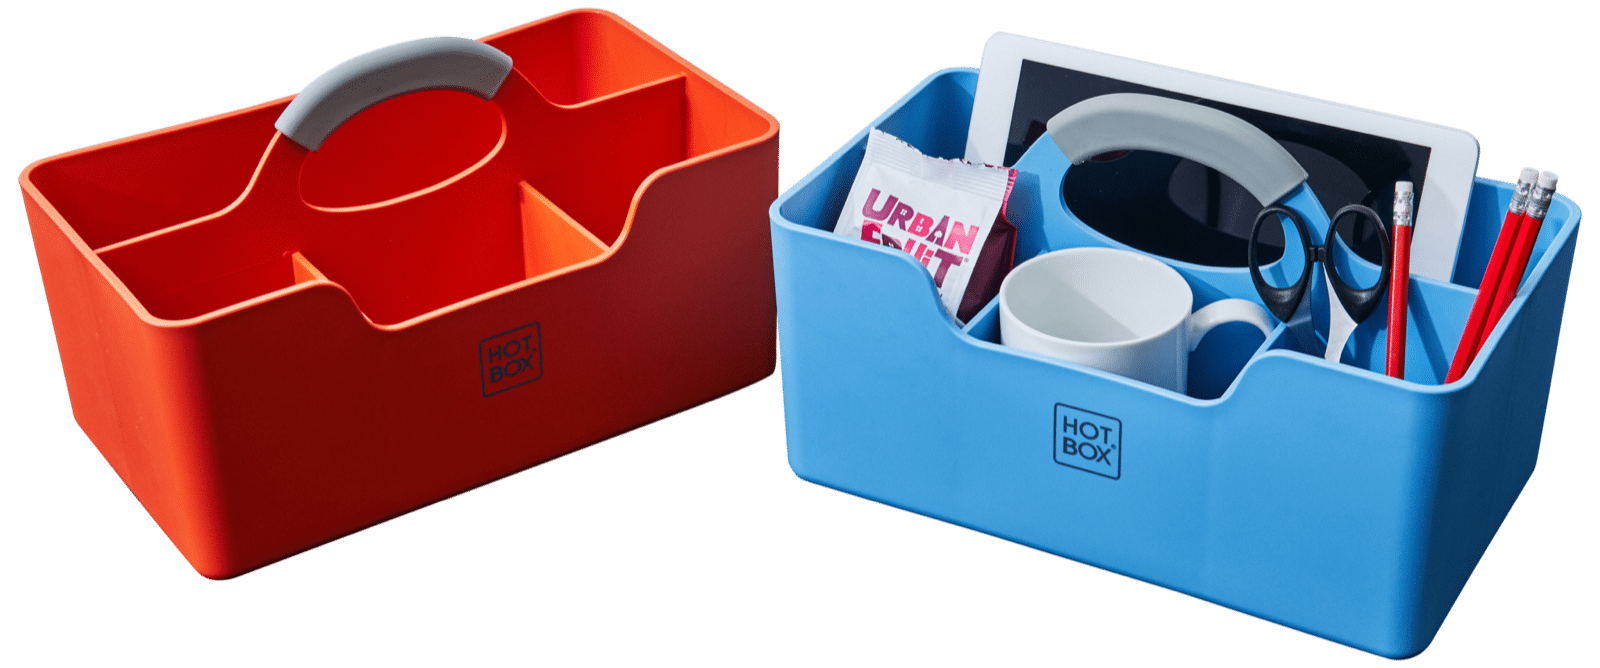 products hotbox pair